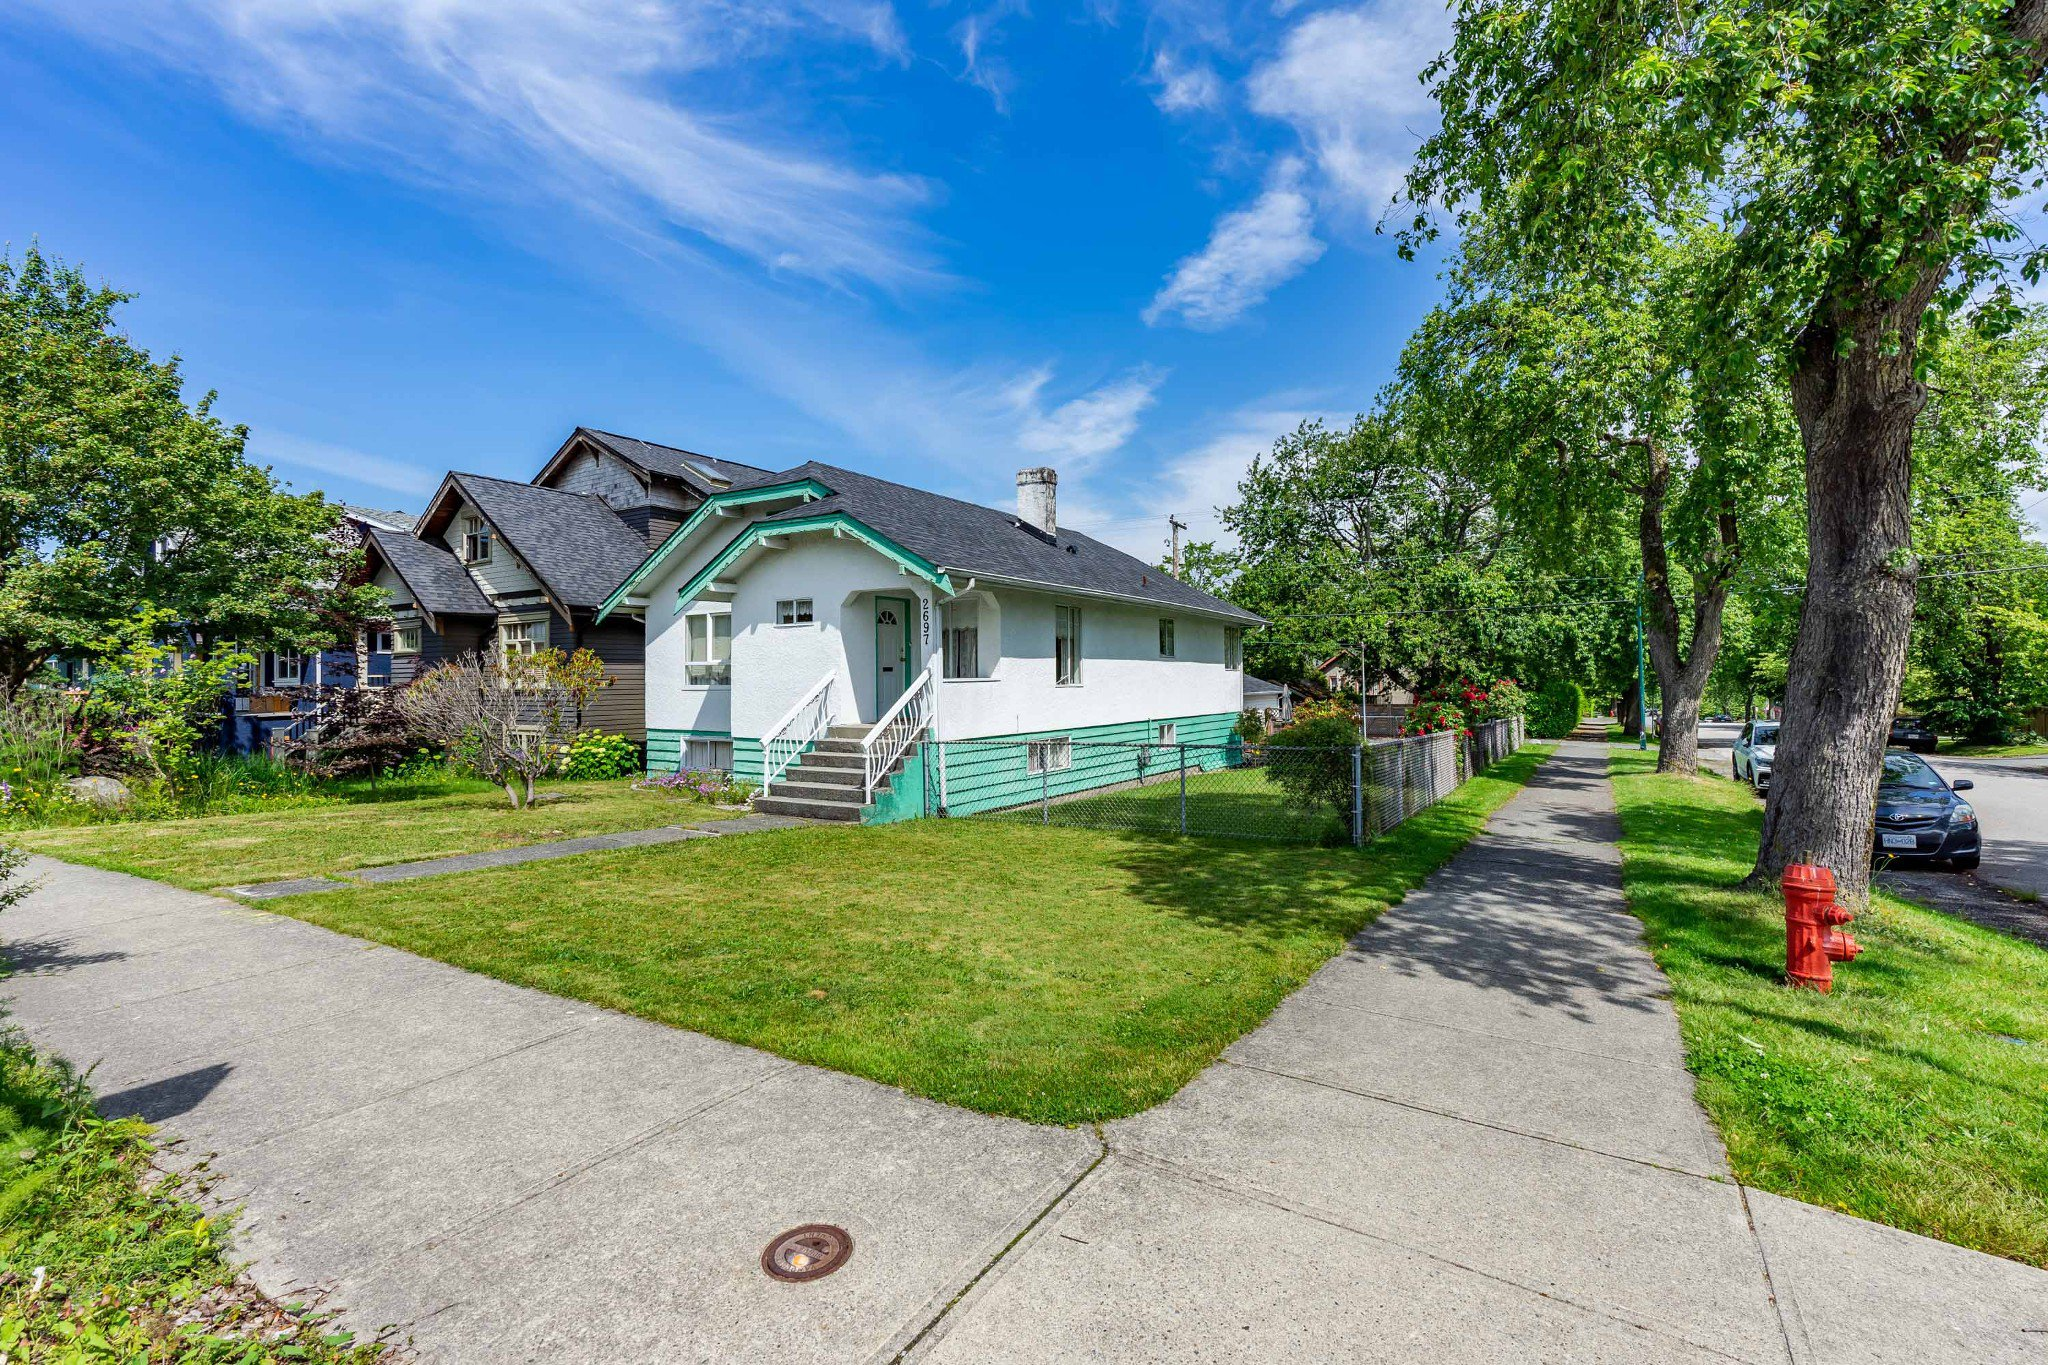 Main Photo: 2697 DUNDAS Street in Vancouver: Hastings House for sale (Vancouver East)  : MLS®# R2471004